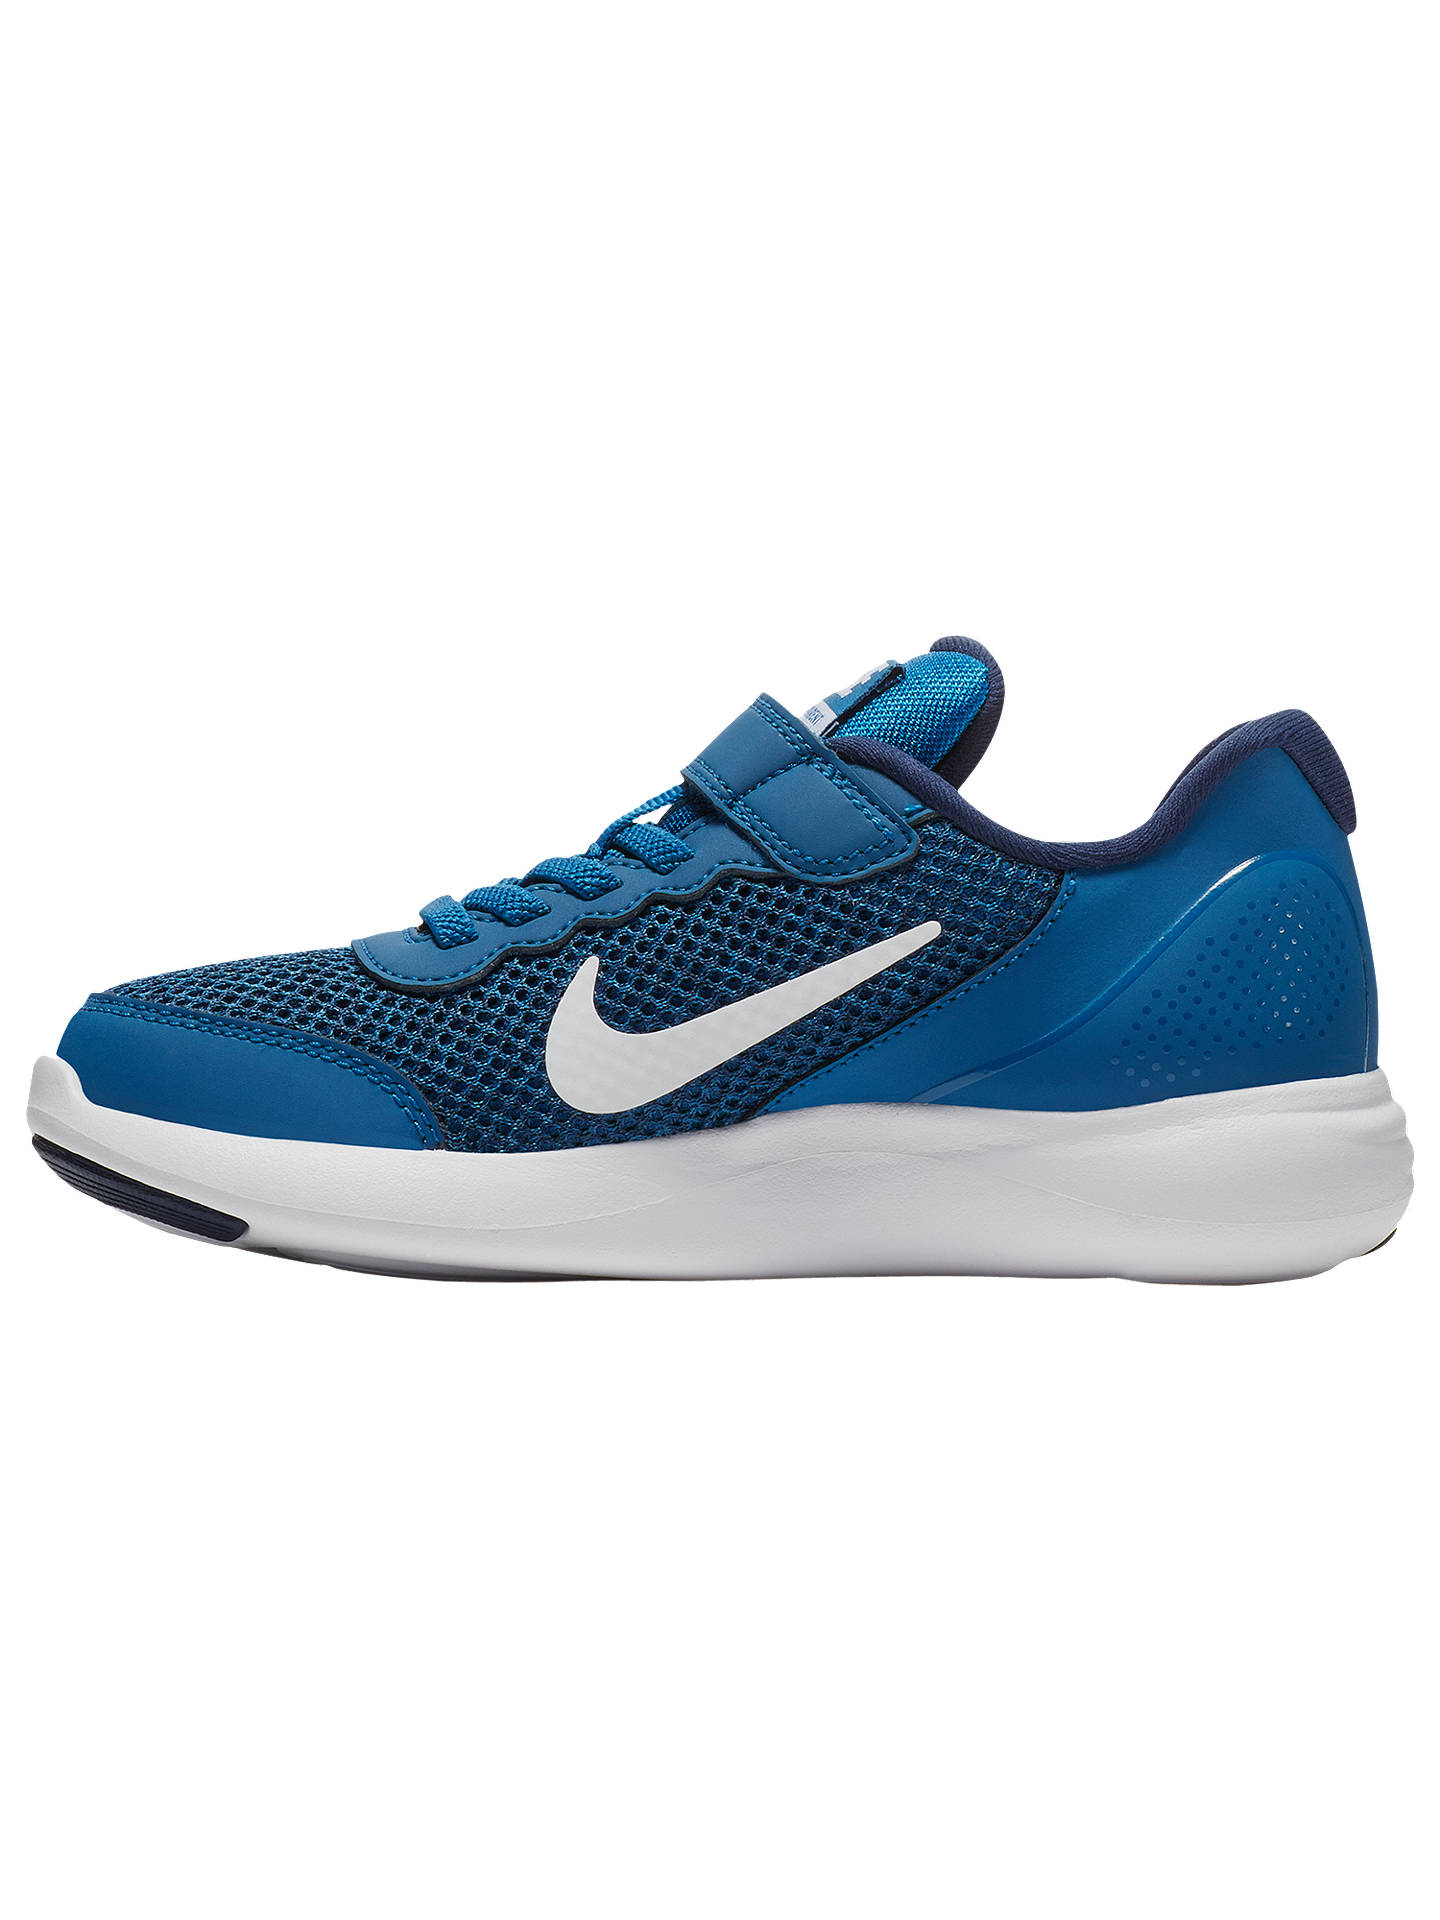 bba6bfc12f0 Nike Children s Lunar Apparent (PS) Trainers at John Lewis   Partners